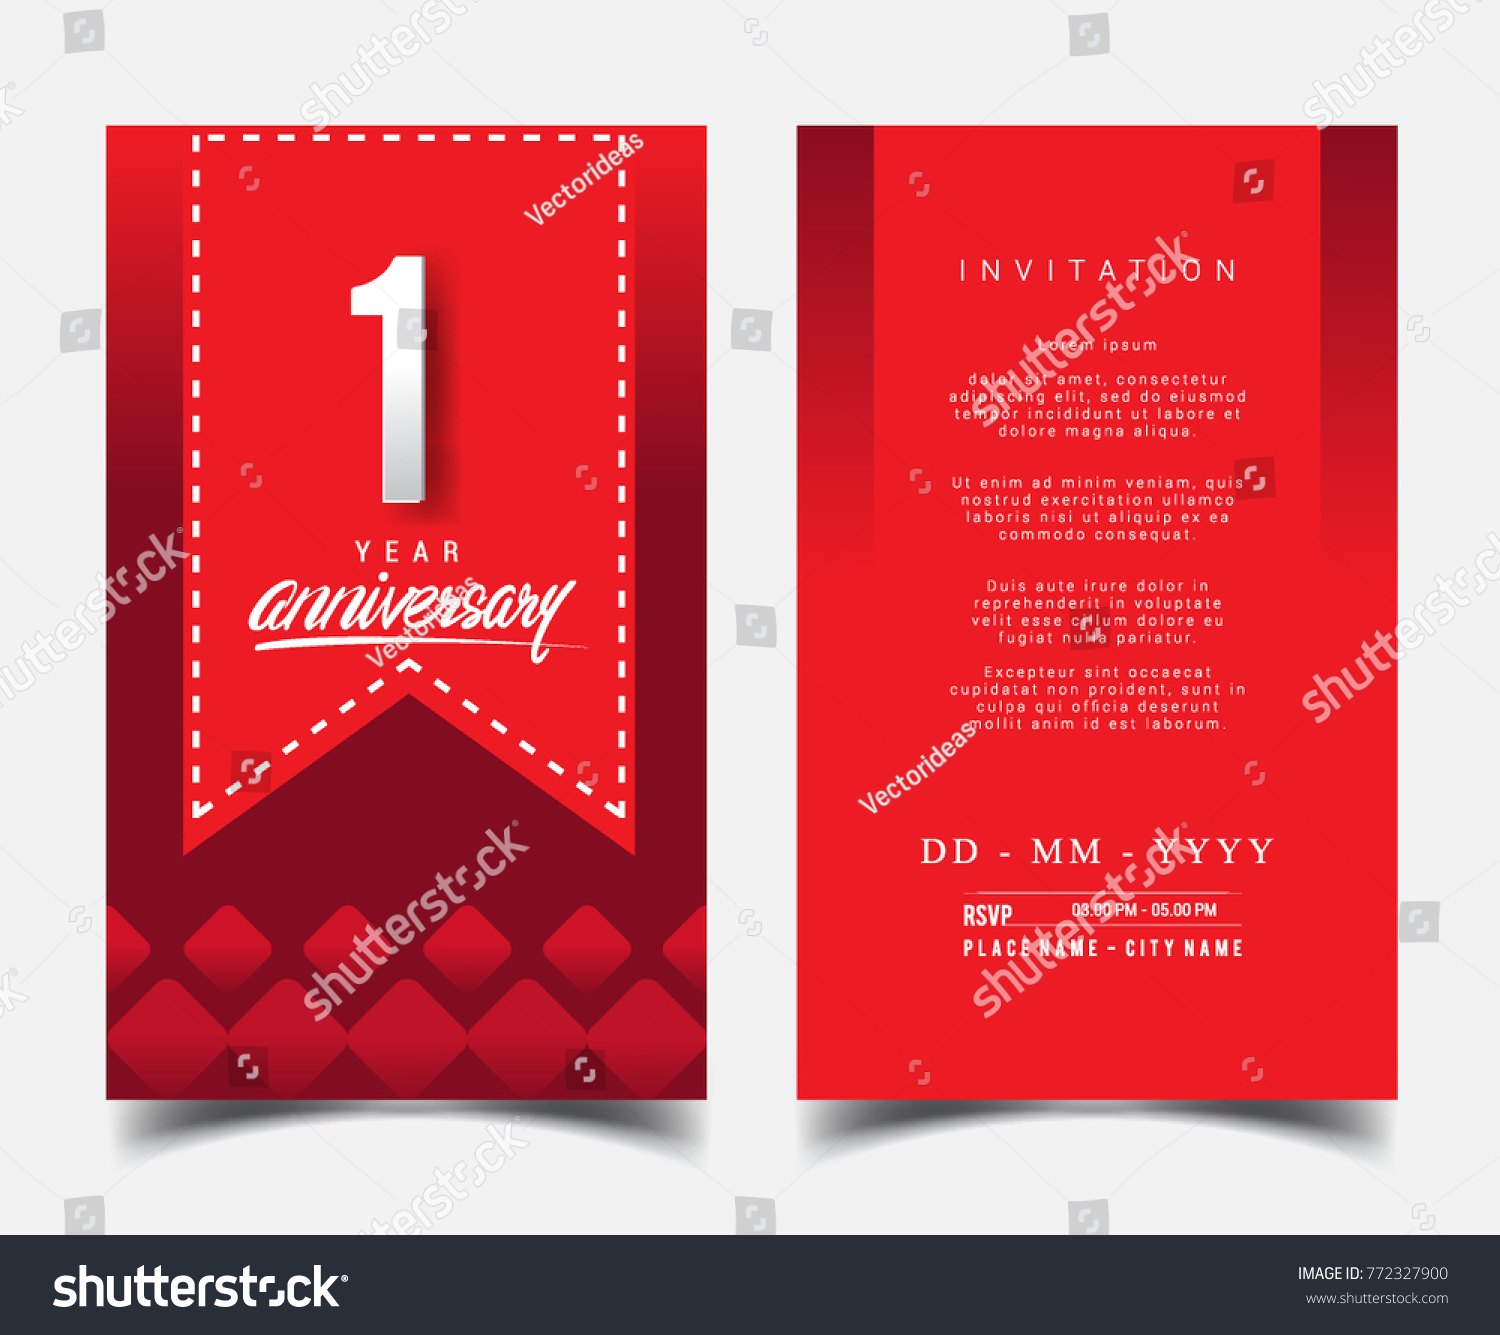 1 year anniversary invitation greeting card flat stock vector hd 1 year anniversary invitationgreeting card with flat design and elegant isolated on red stopboris Image collections